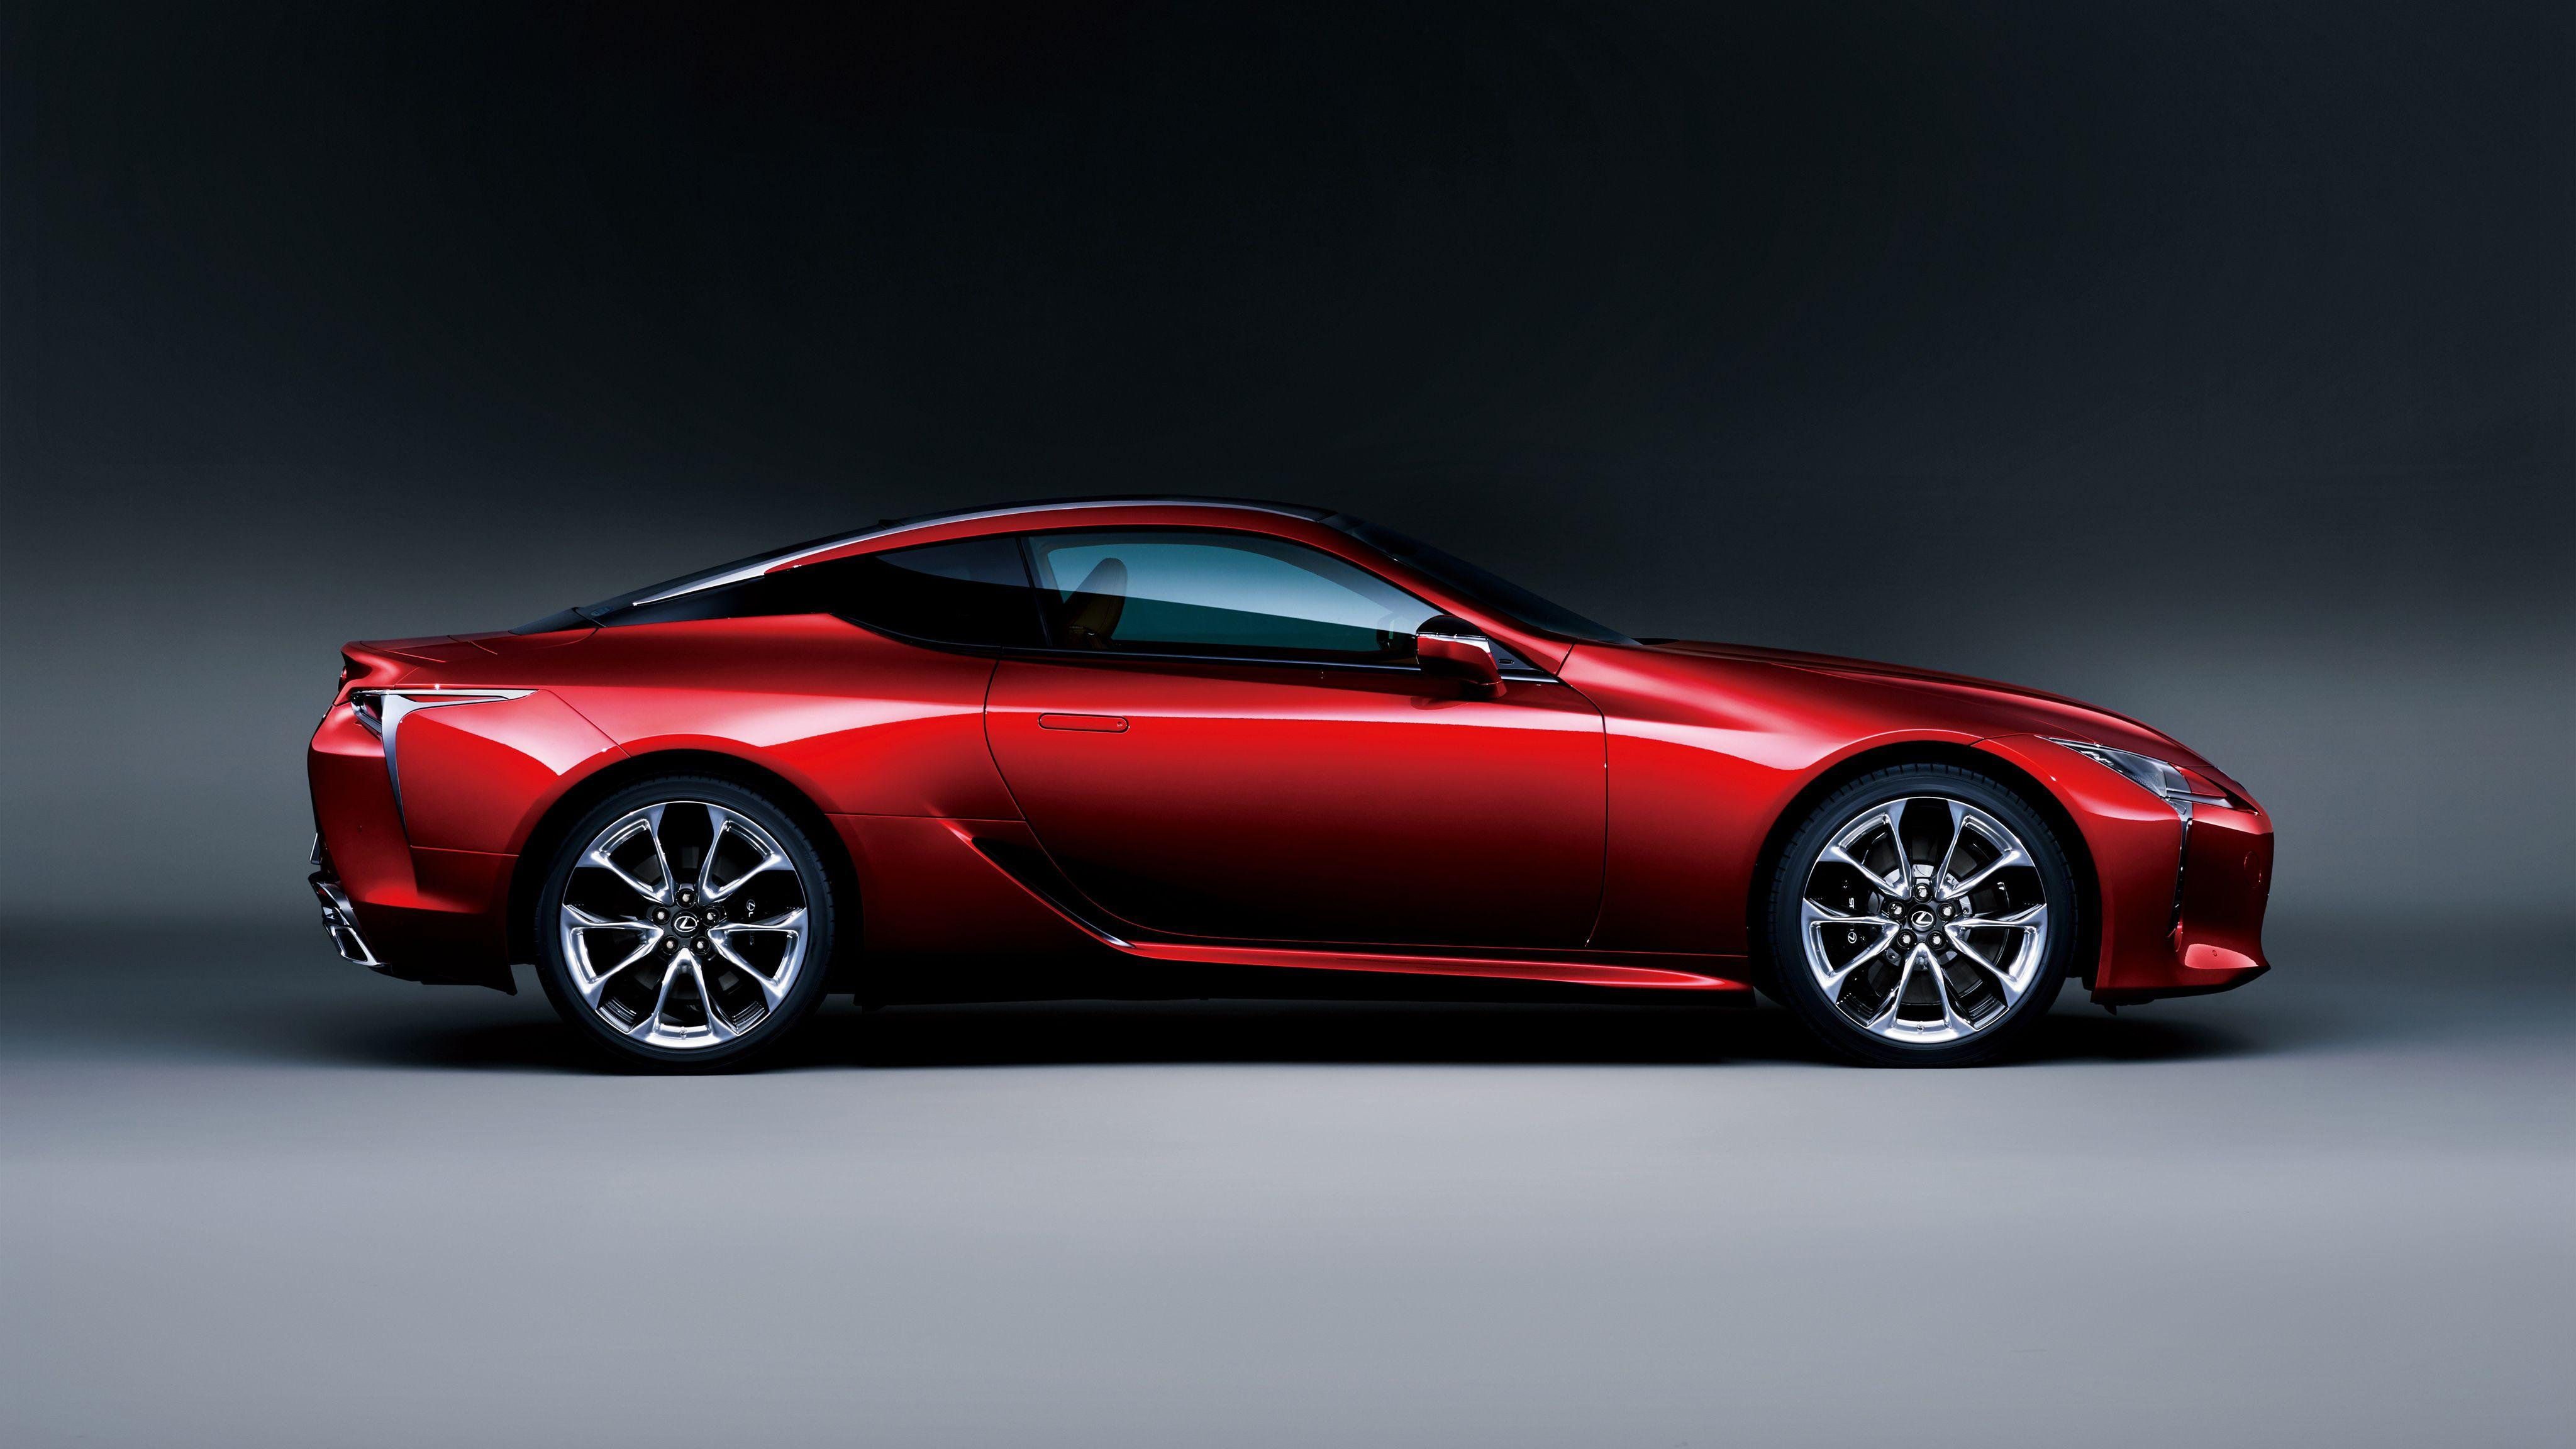 2018 Lexus Lc 500 13 Wallpapers